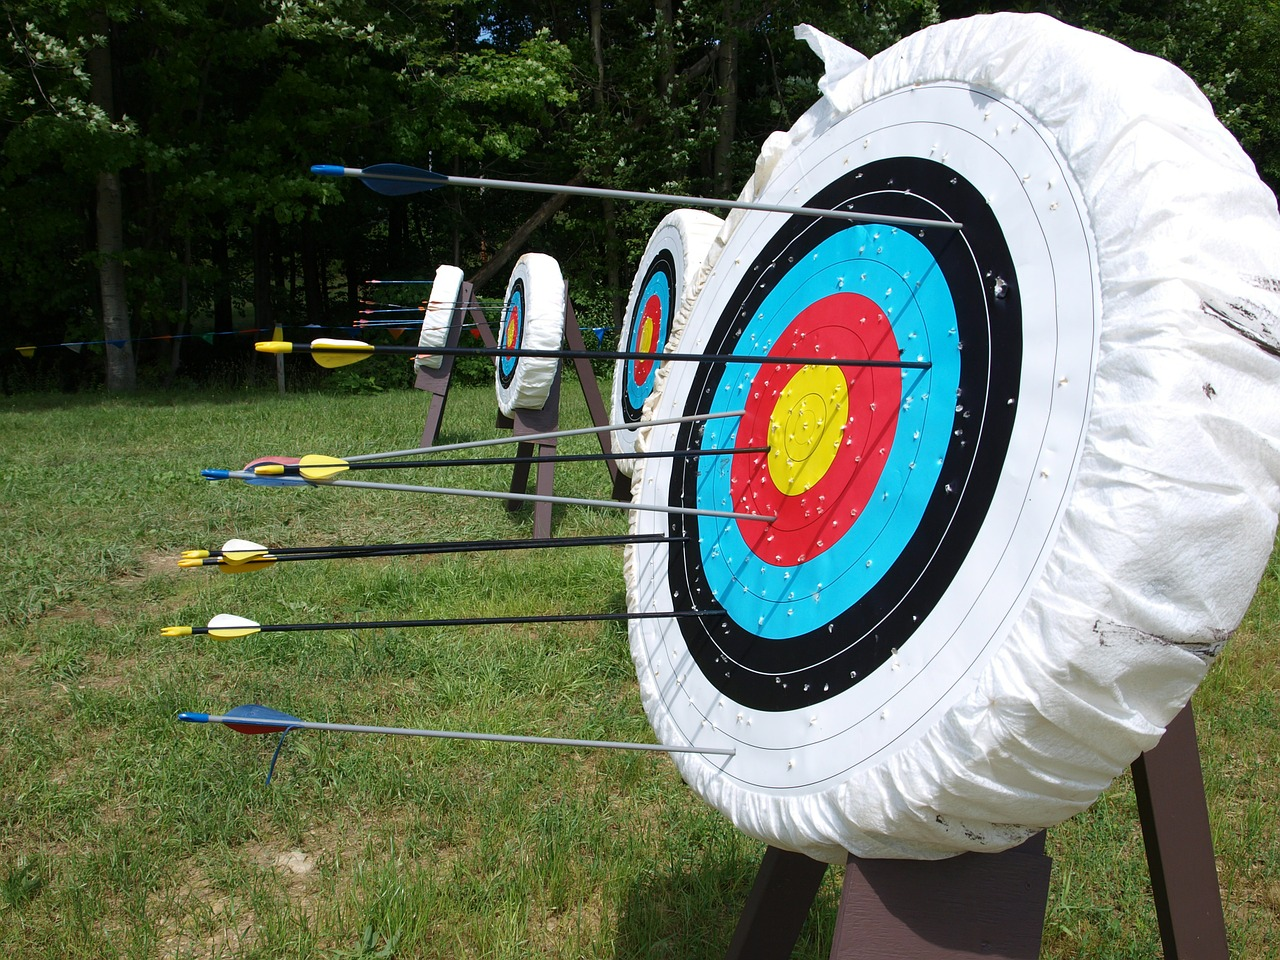 Archery Target Butts at a shooting range. Buy Benel Archery Gift Certificates and Gift Cards at Gifted.PH online for anyone in Manila Philippines